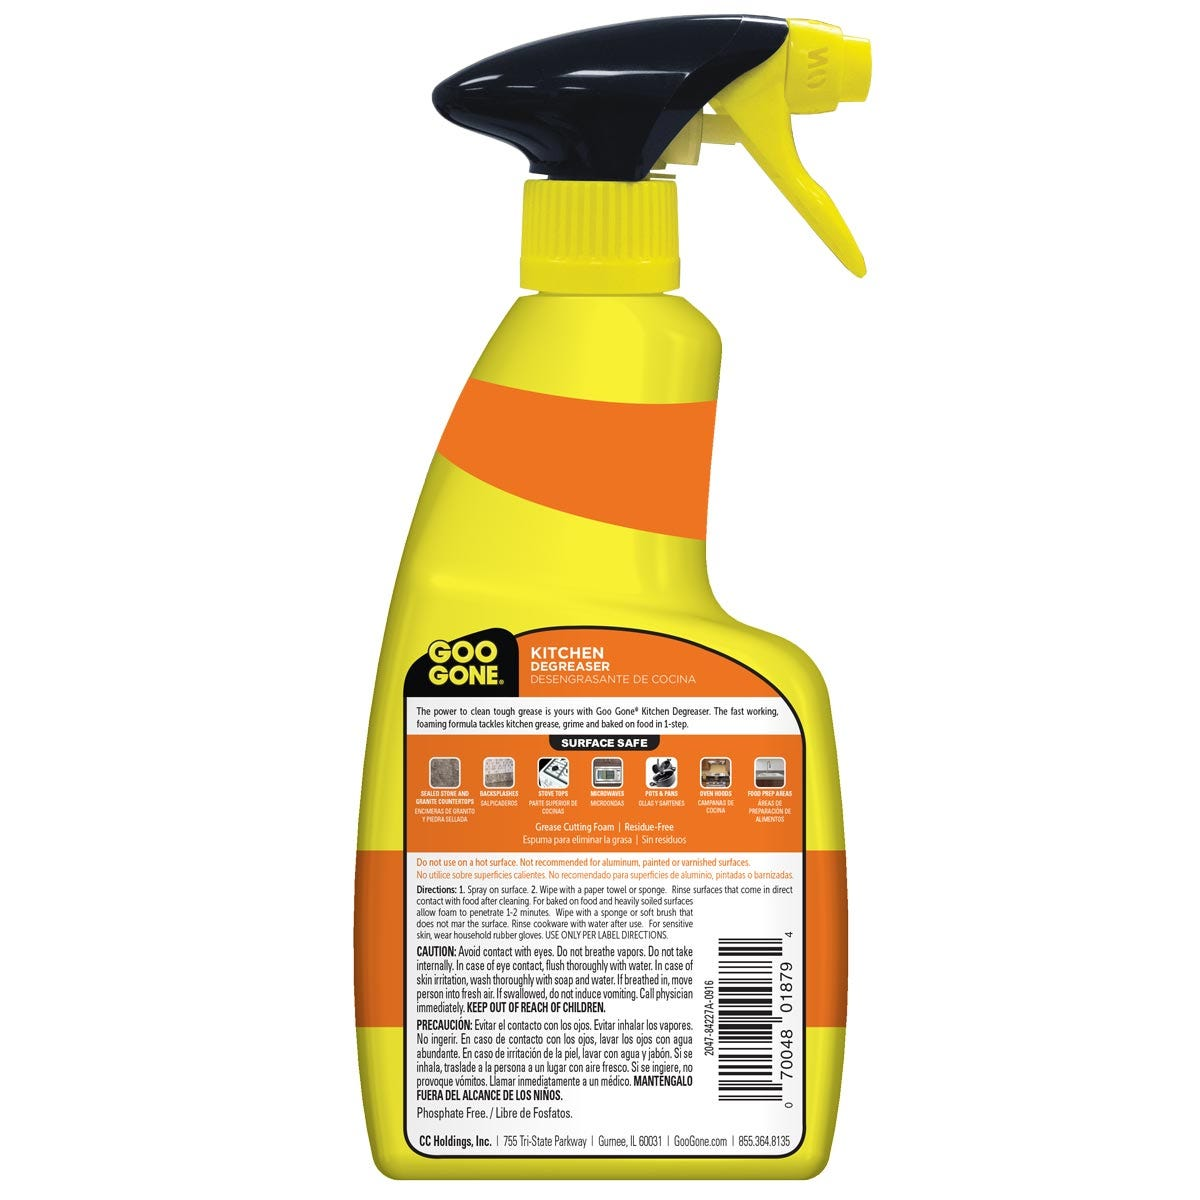 Kitchen Degreaser back label